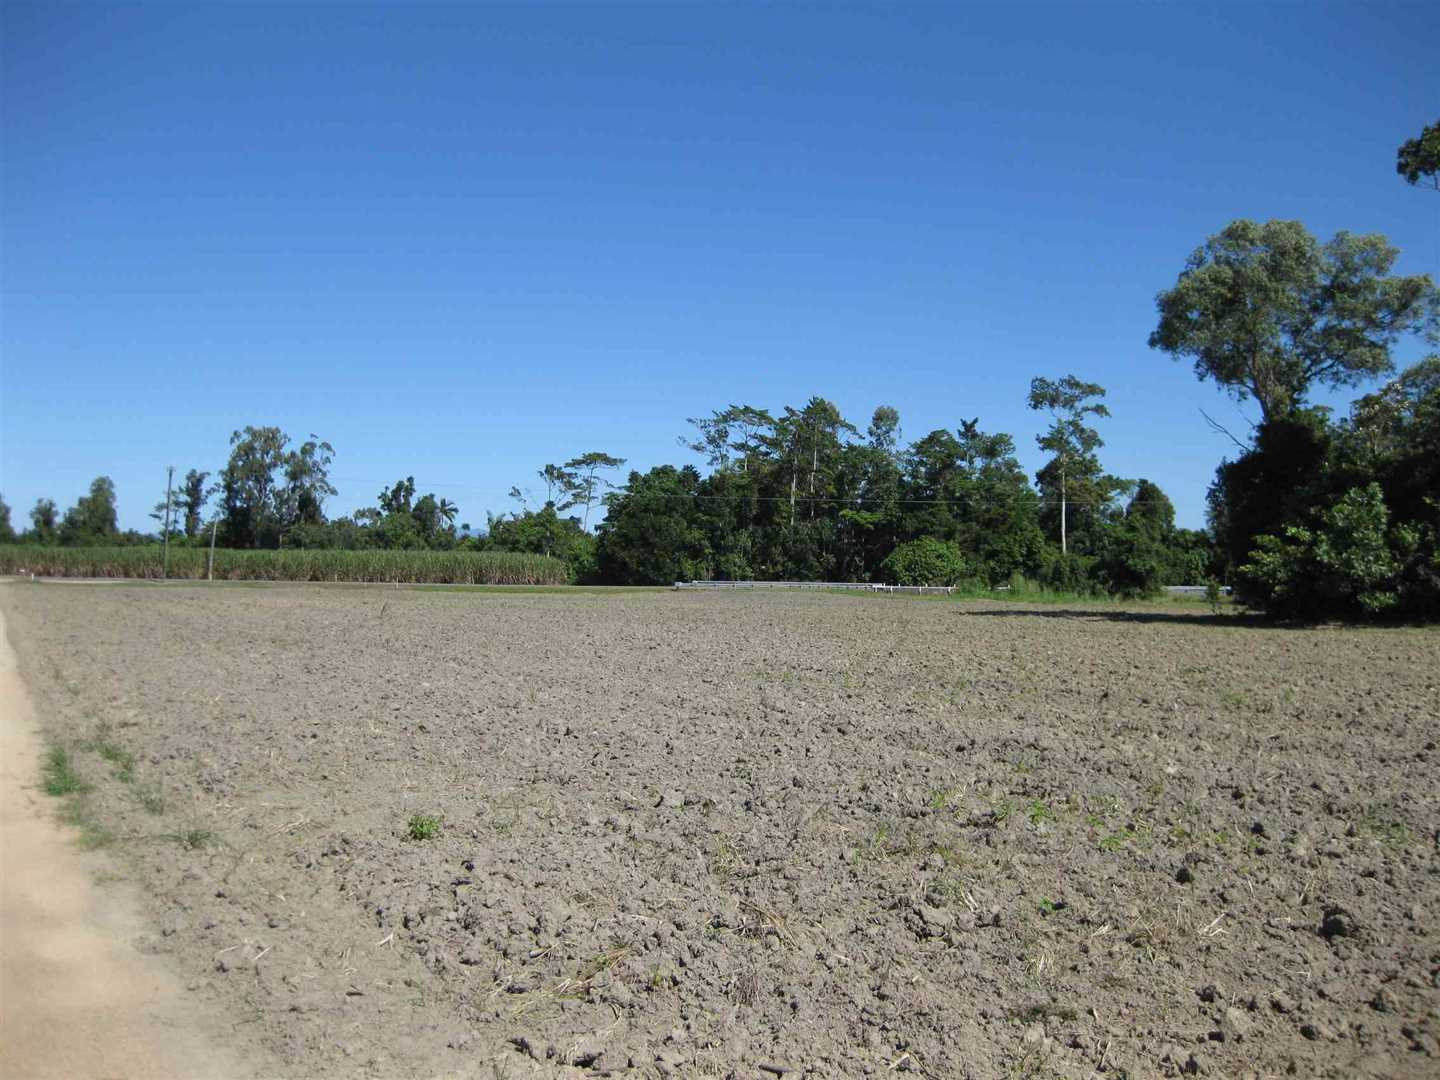 View of part of property showing part of fallow cane land, photo 2